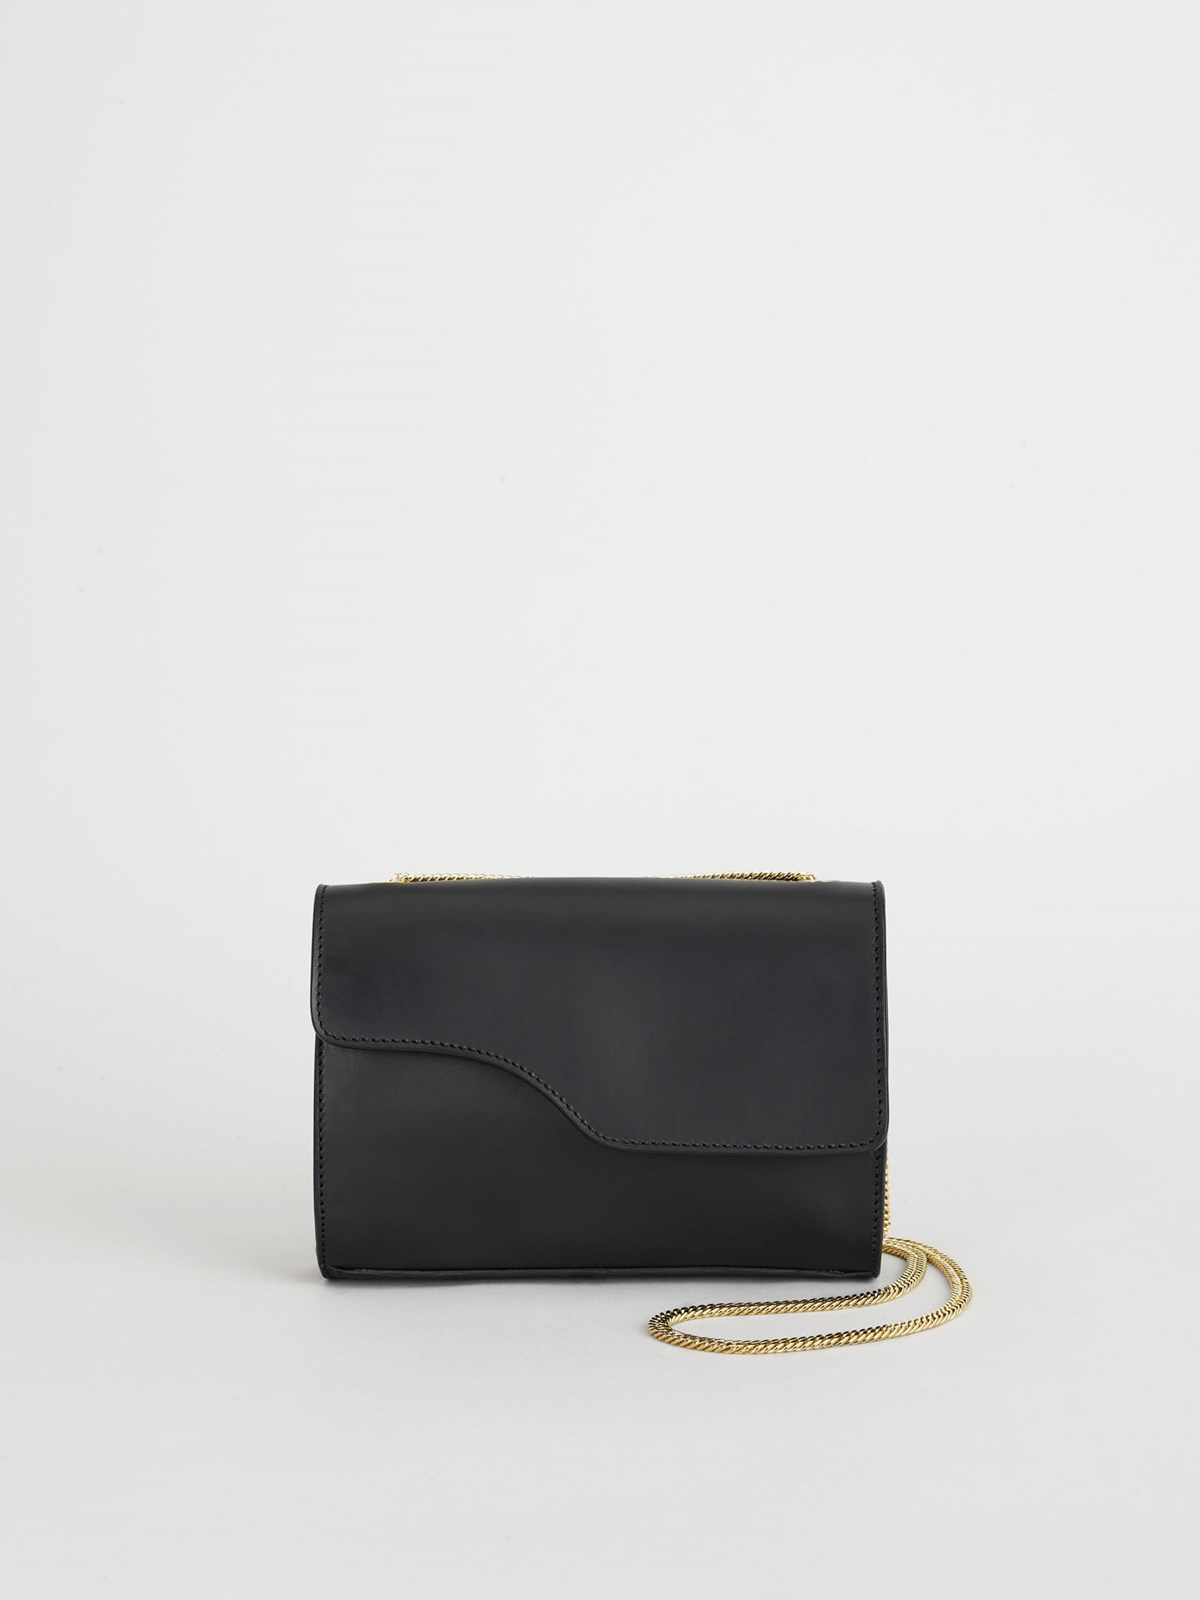 Pomerance Black Crossbody bag